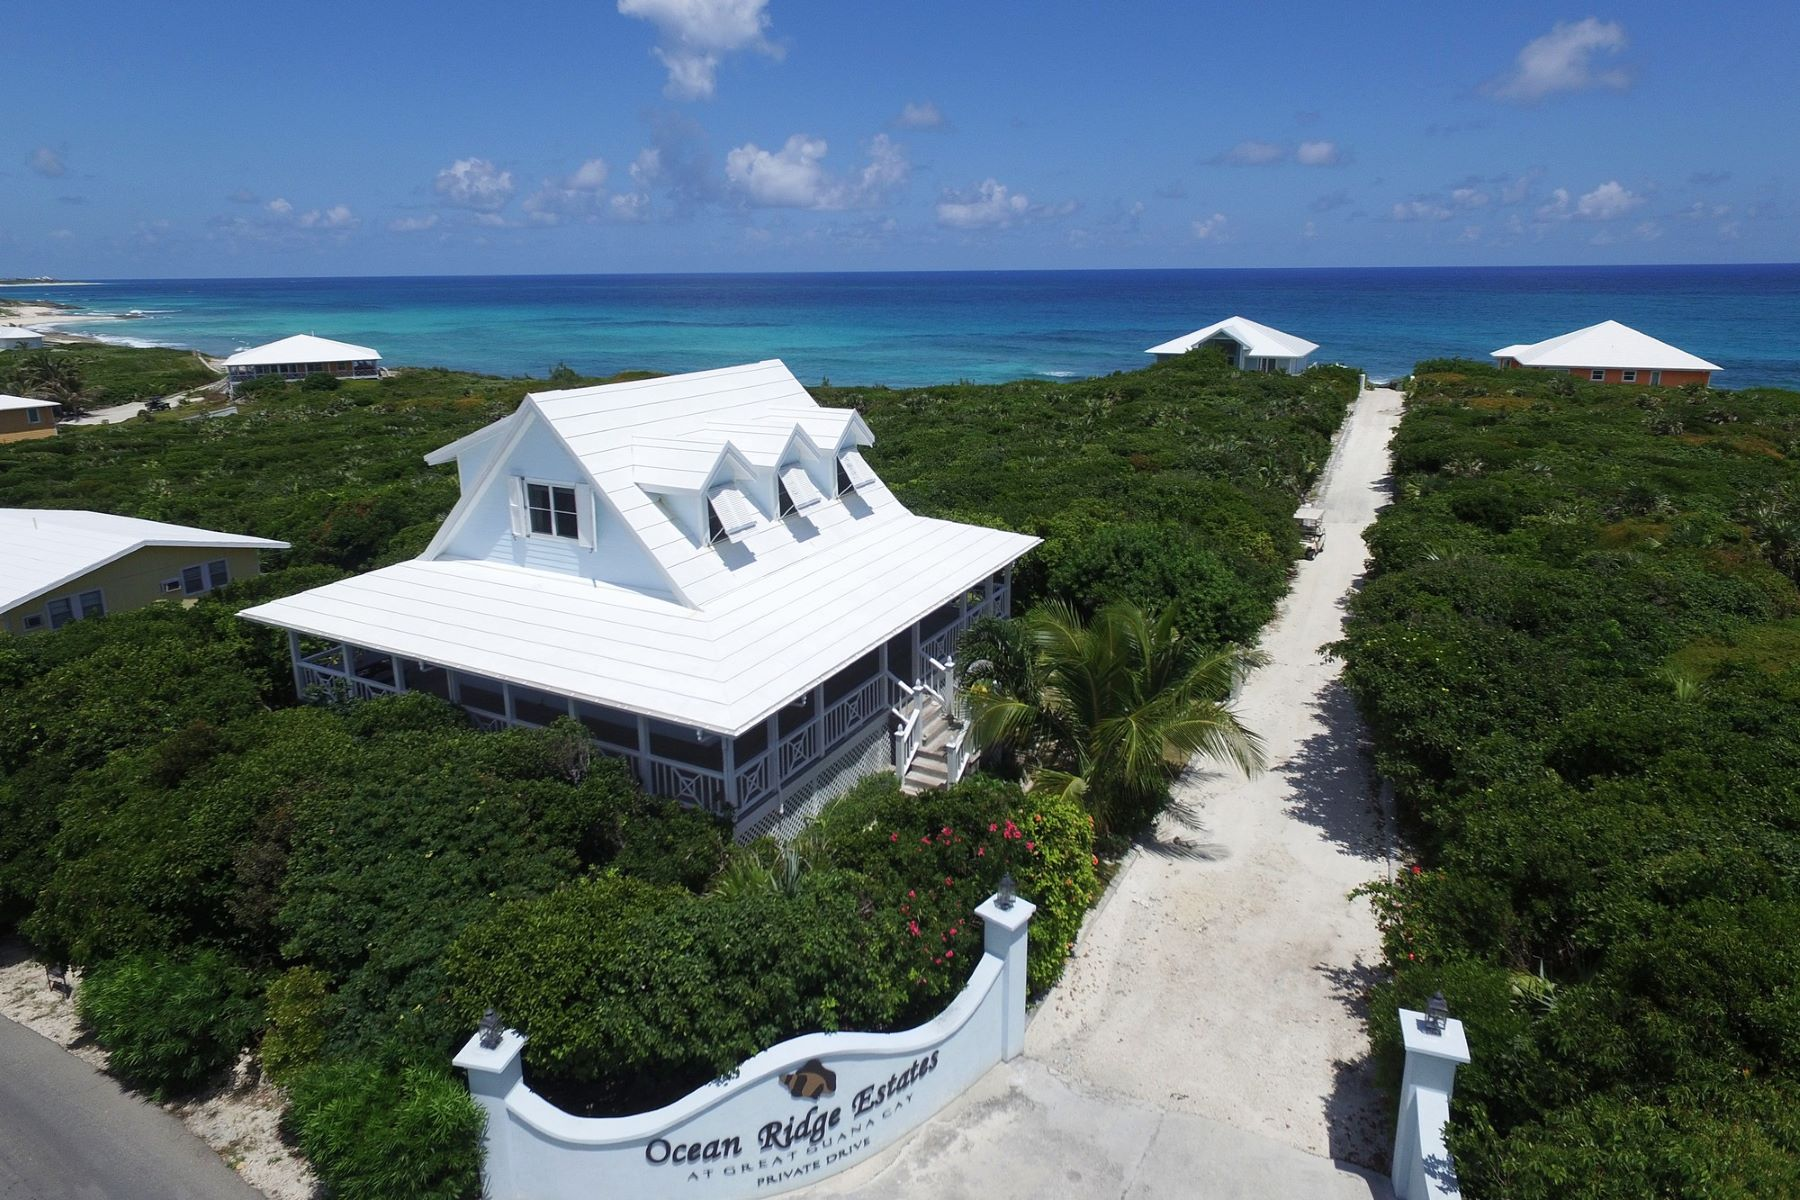 Single Family Home for Sale at Alibi Guana Cay, Abaco Bahamas